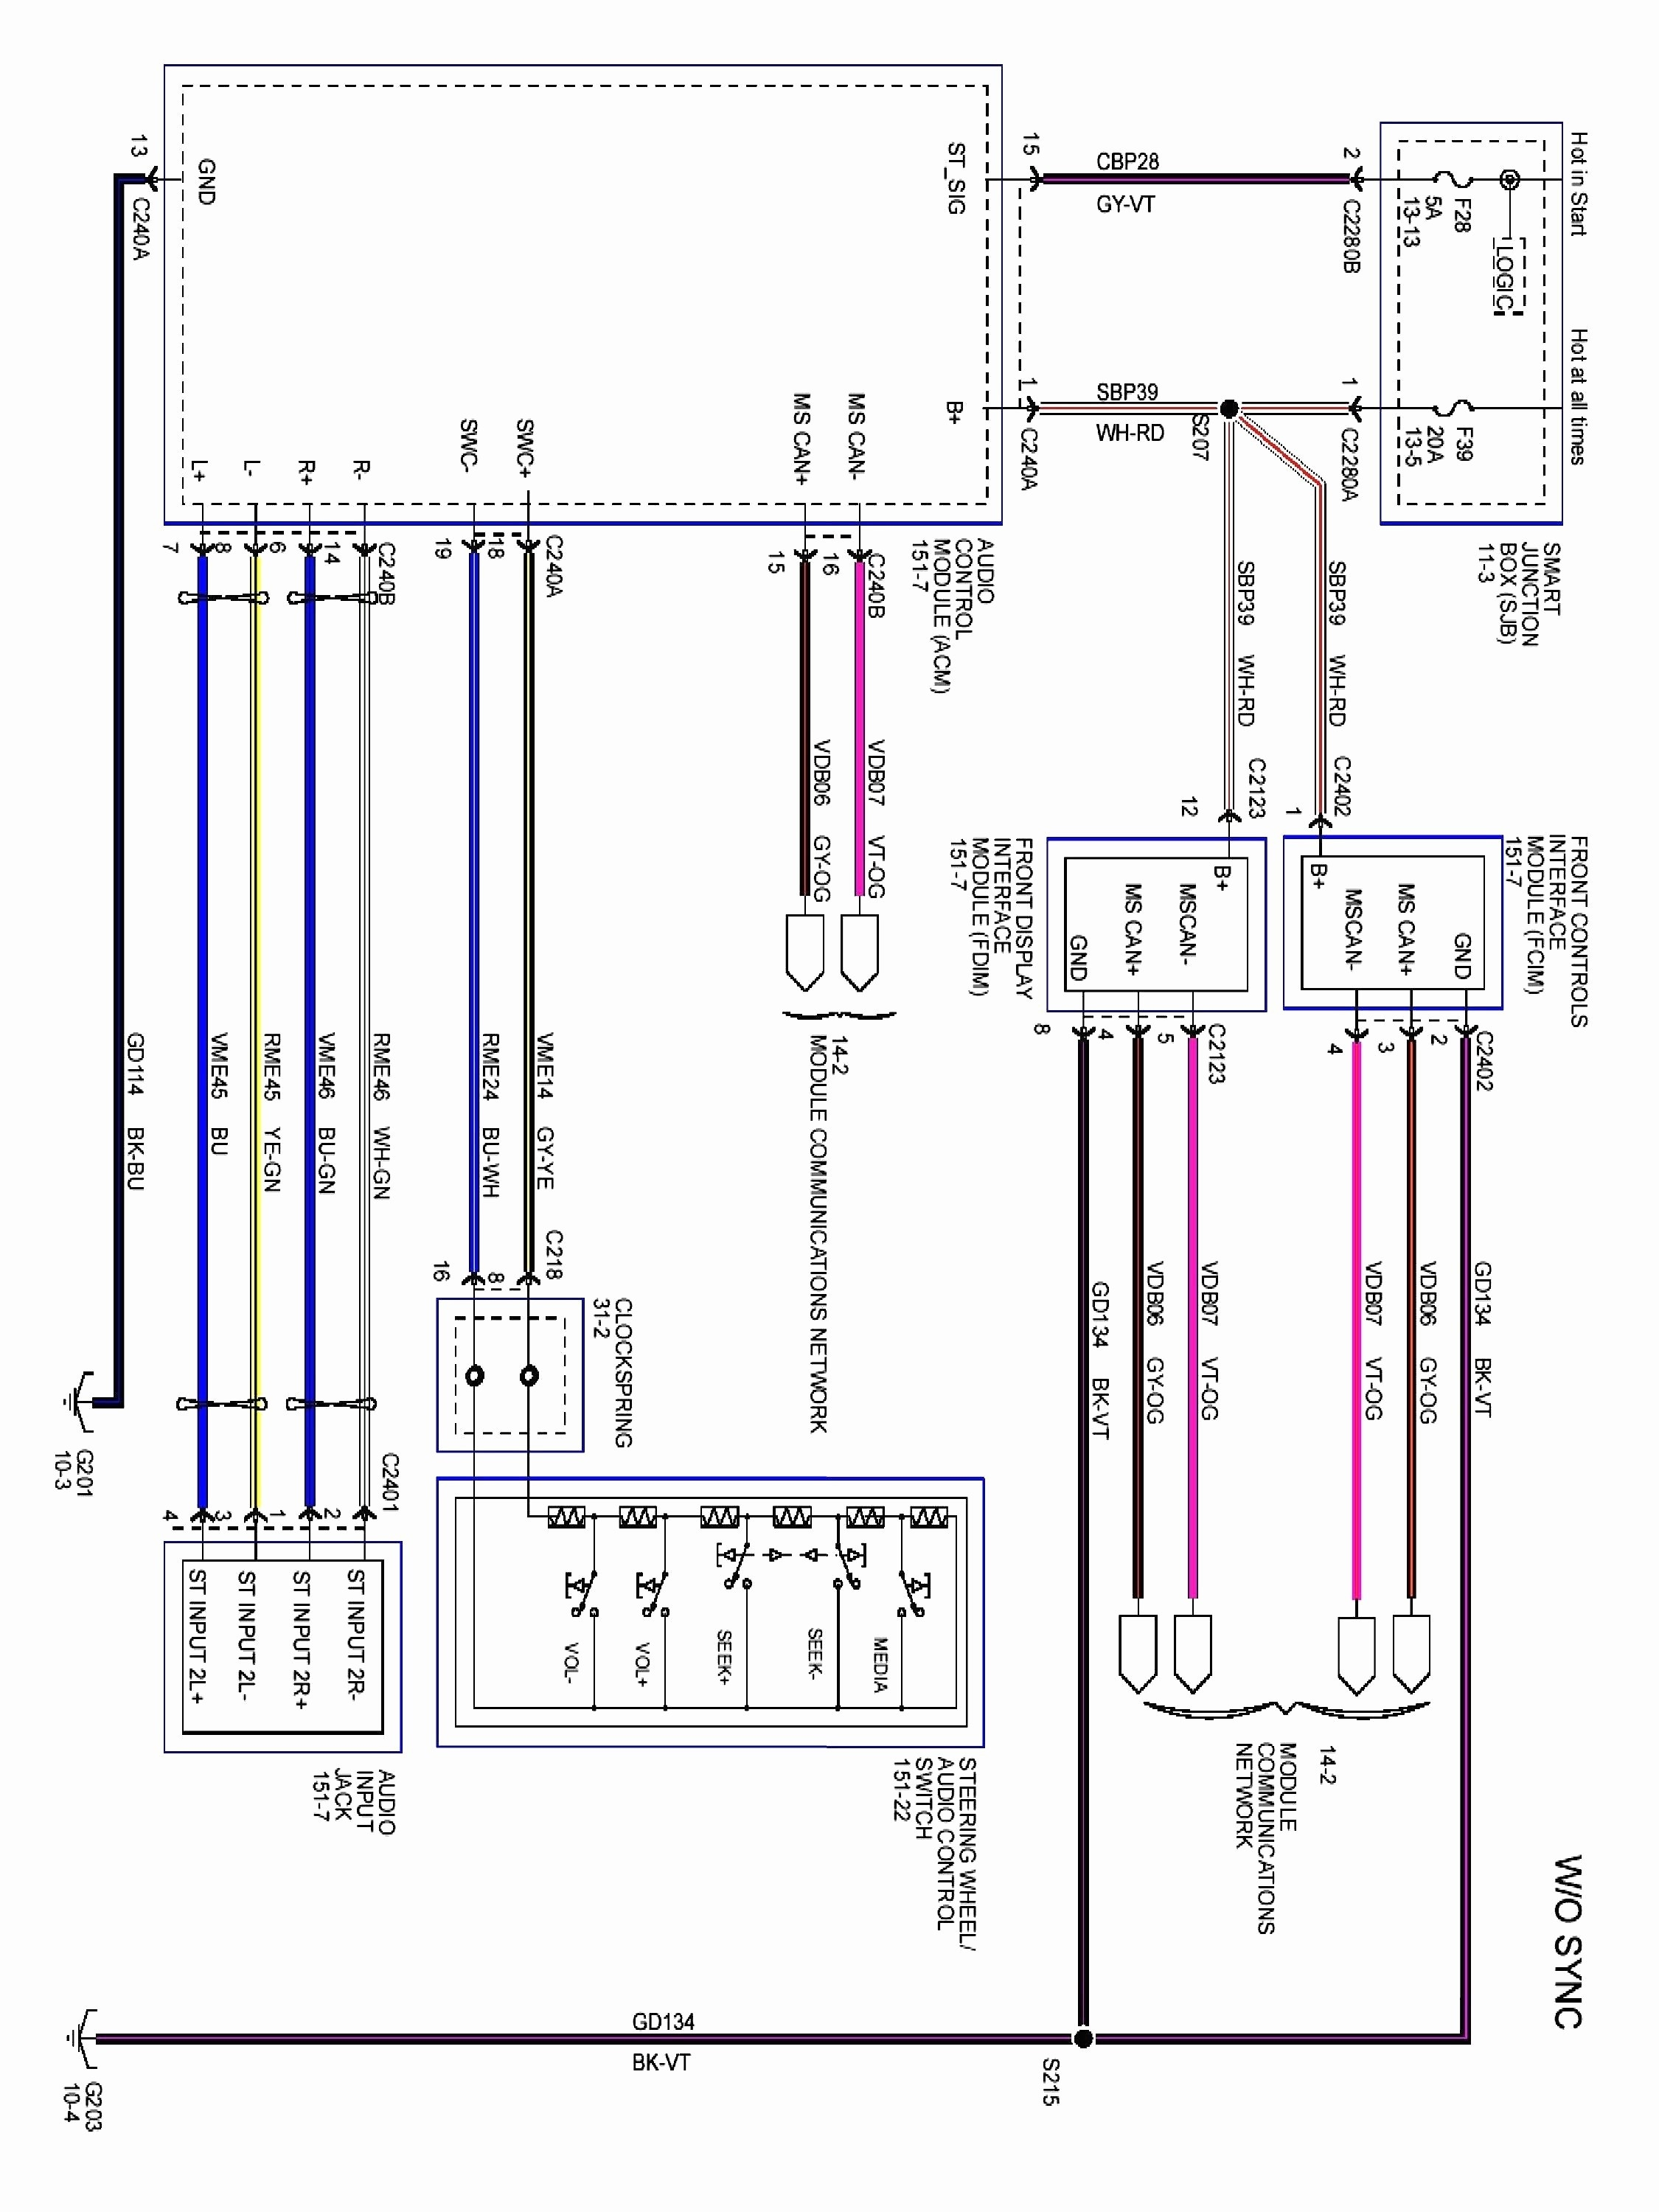 pioneer radio wiring diagram Collection-Bmw Car Stereo Wiring Diagram New Amplifier Wiring Diagram Inspirational Car Stereo Wiring Diagrams 0d 3-b